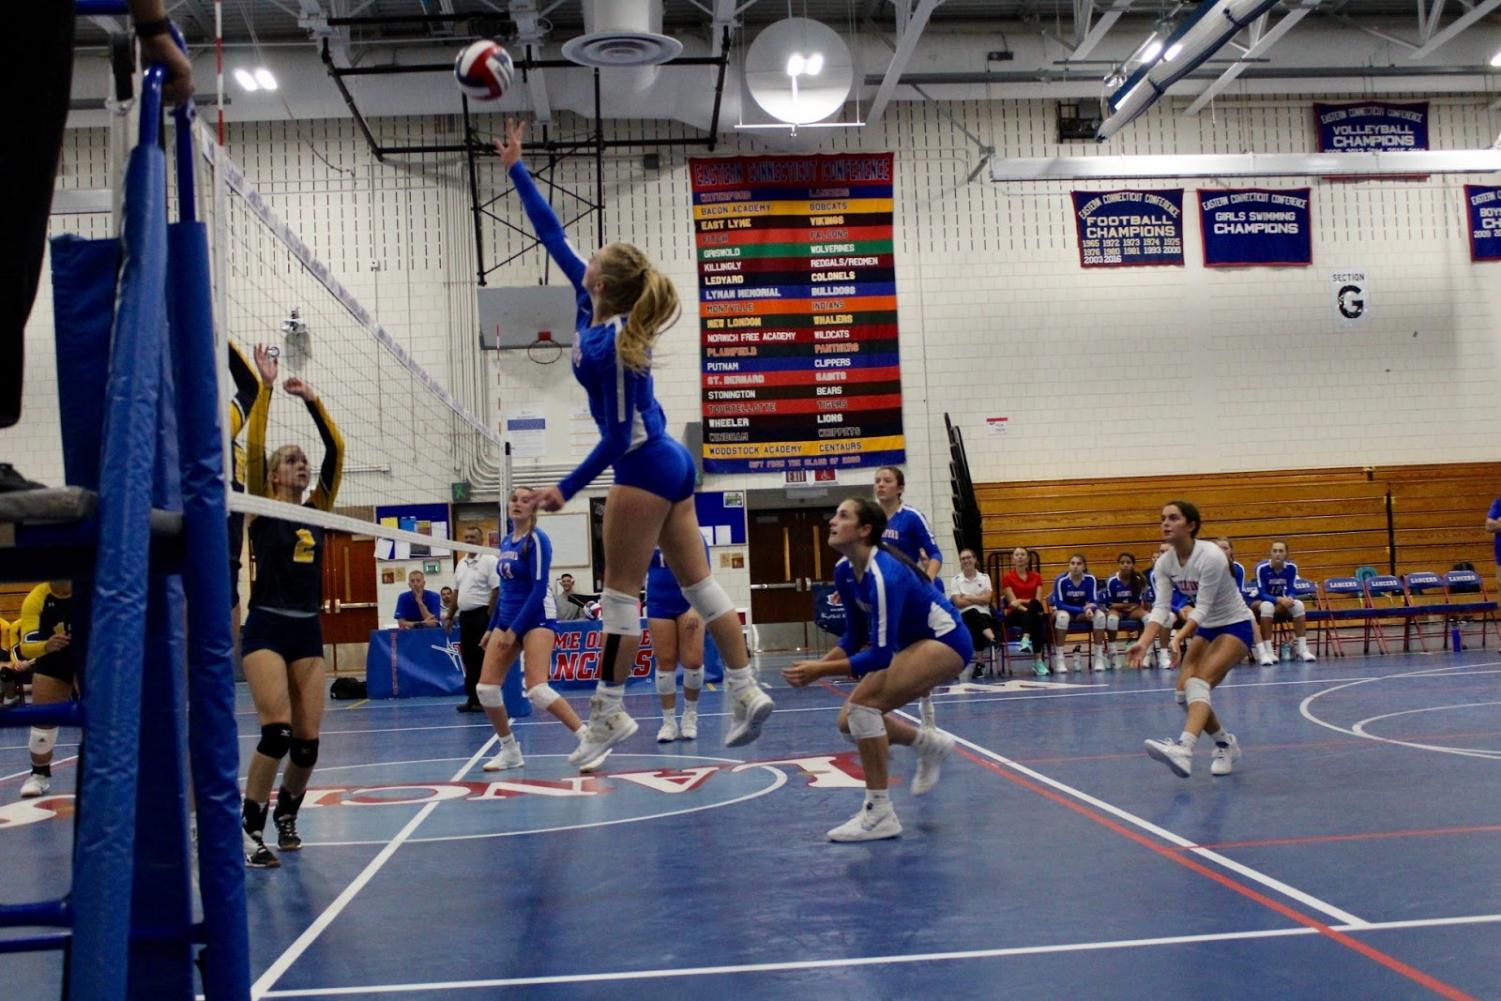 Ryleigh Gonyo attempts a kill in Waterford's game.